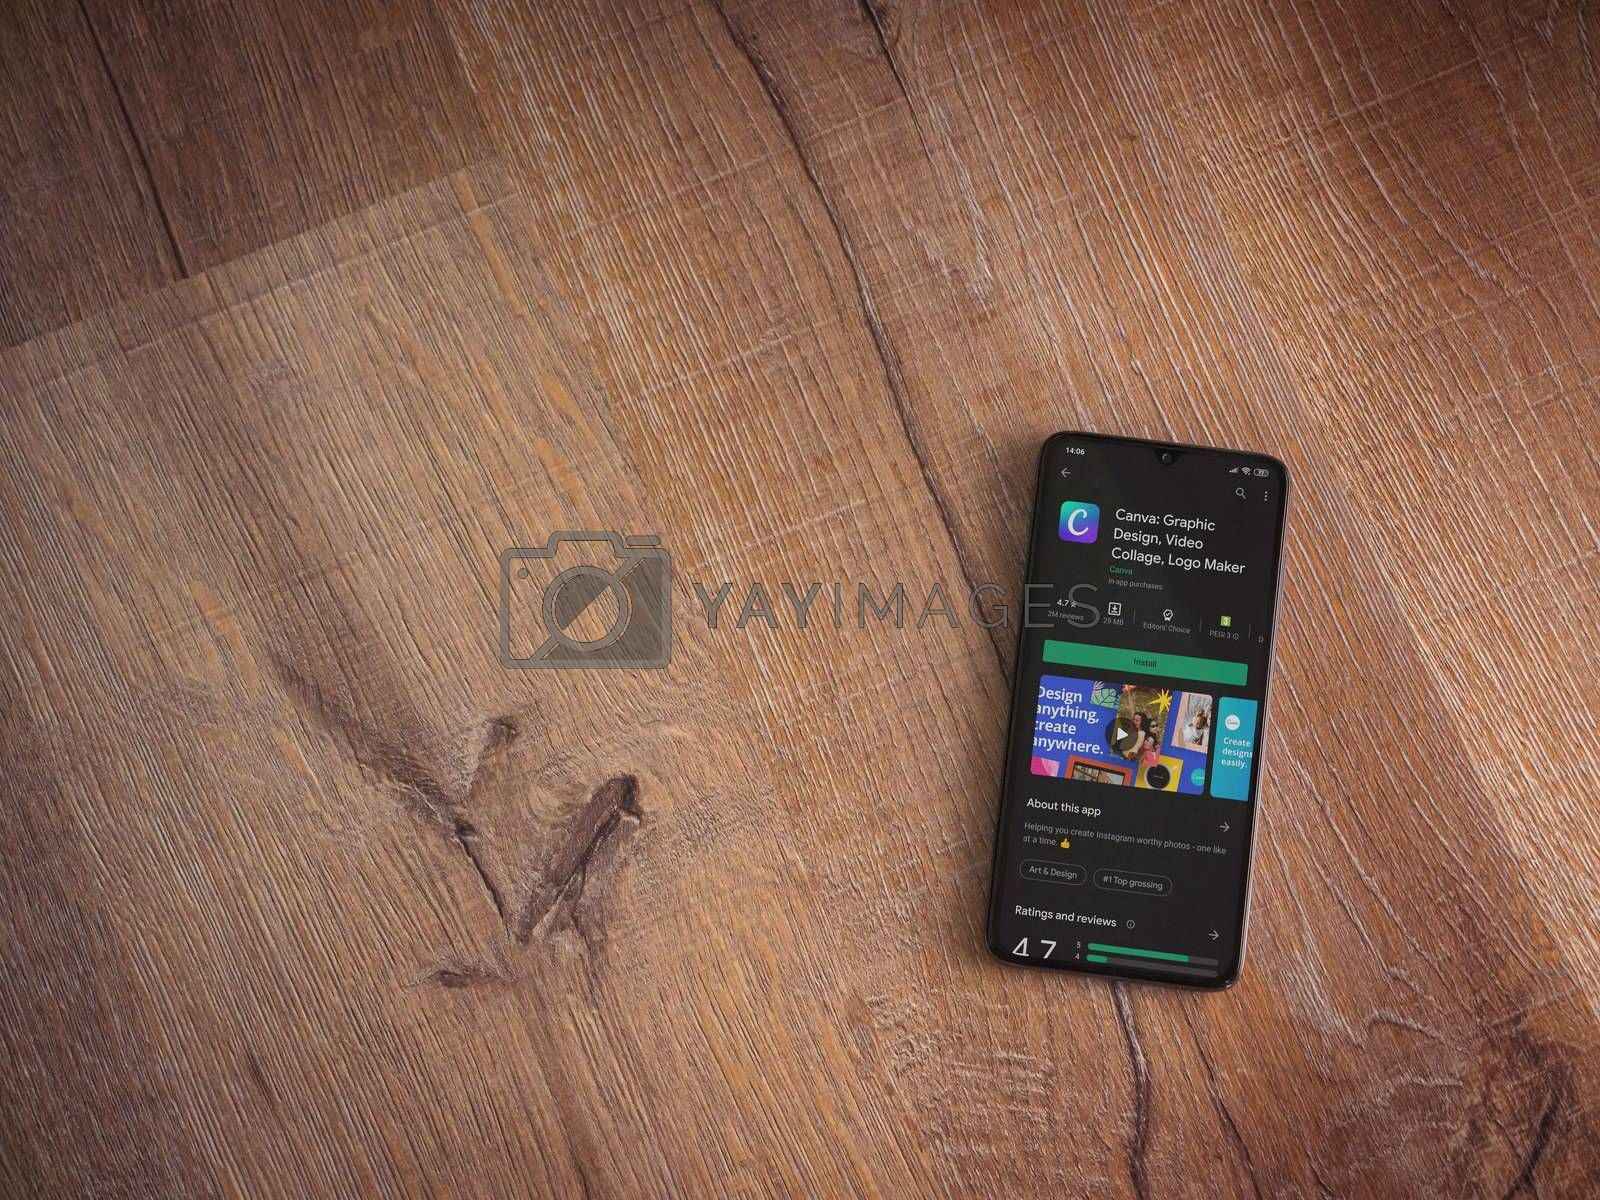 Lod, Israel - July 8, 2020: Canva - Graphic Design app play store page on the display of a black mobile smartphone on wooden background. Top view flat lay with copy space.